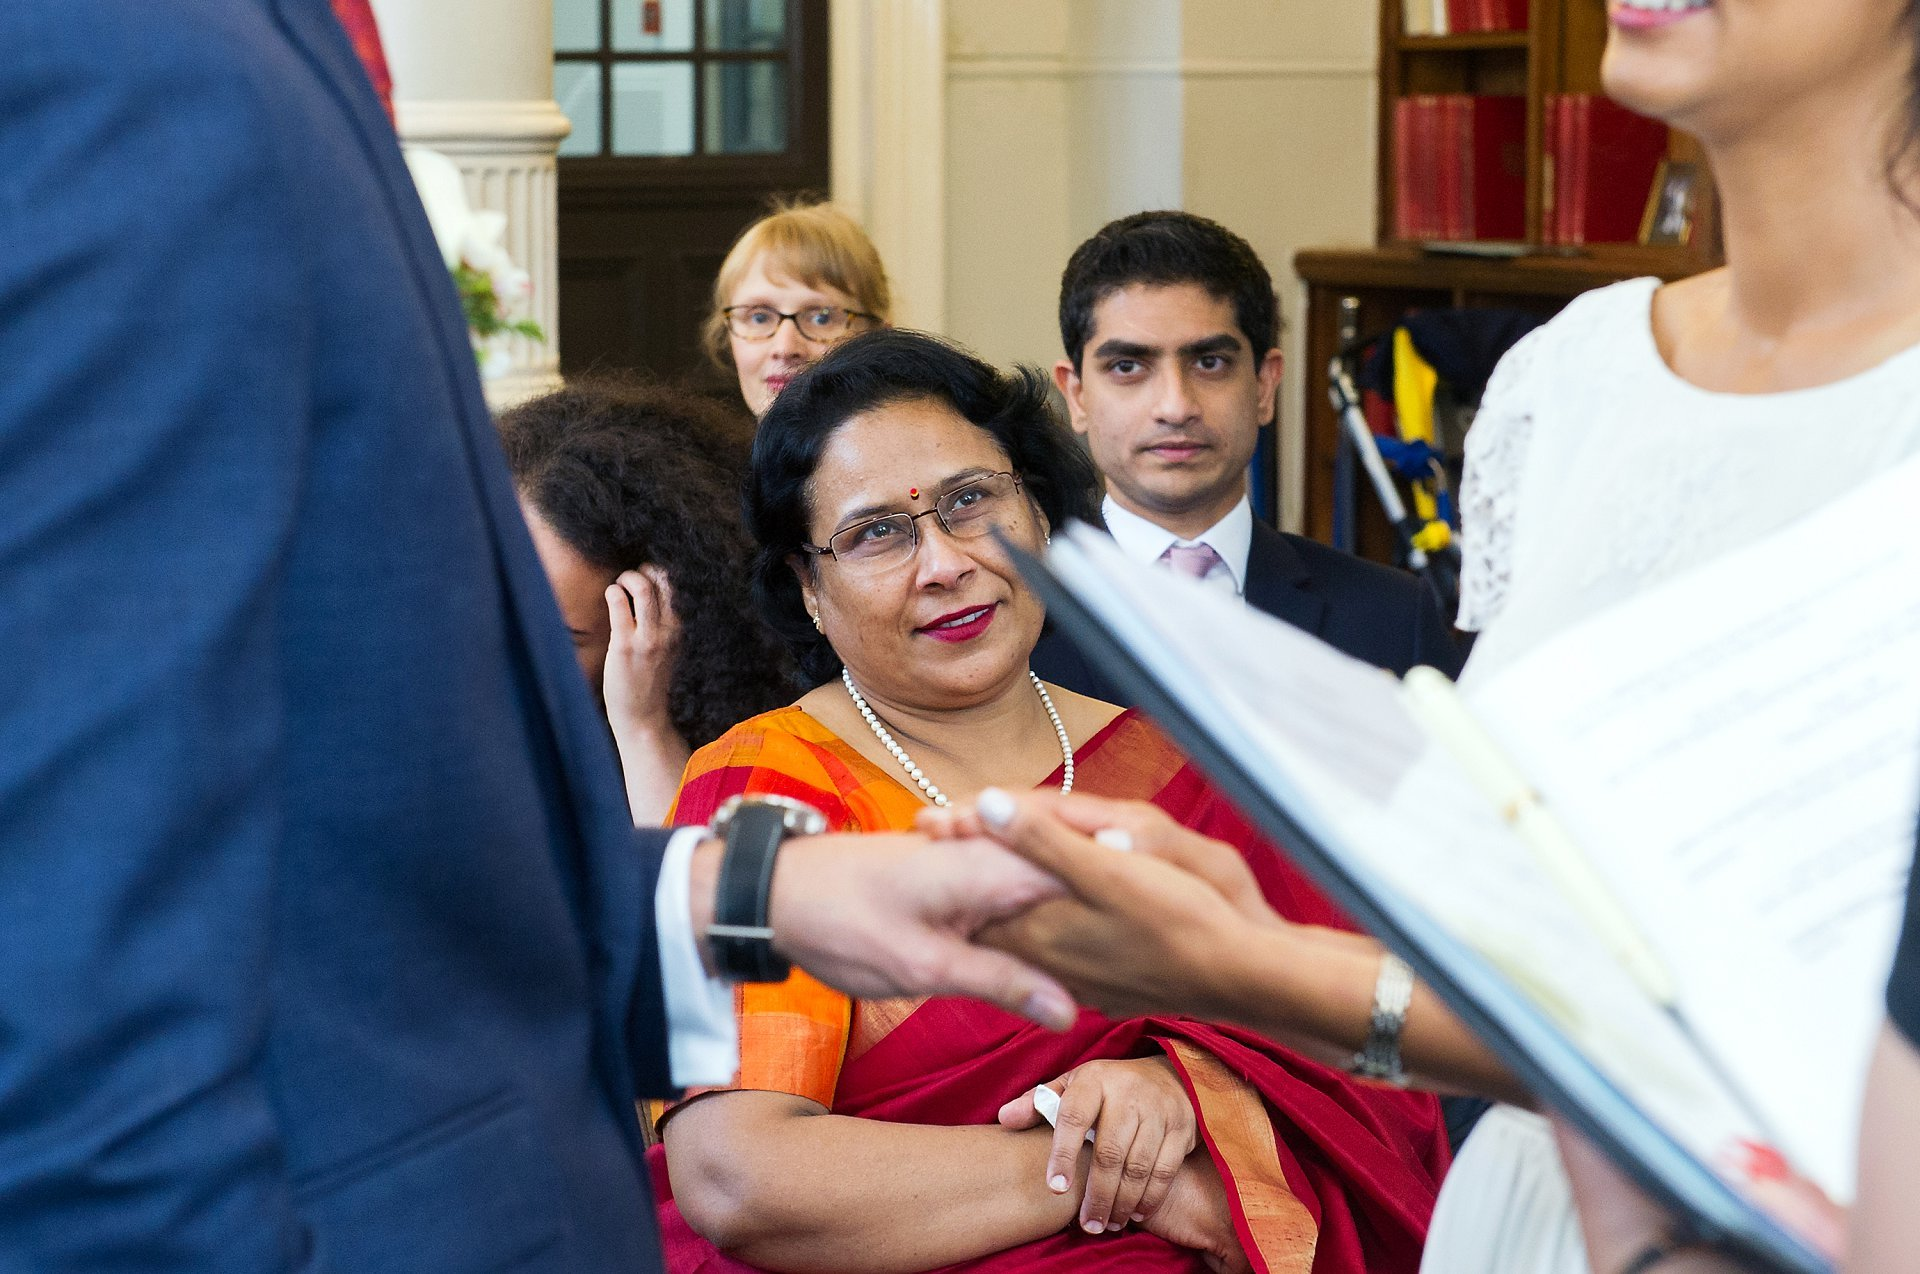 indian mother captured by marylebone road wedding photographer